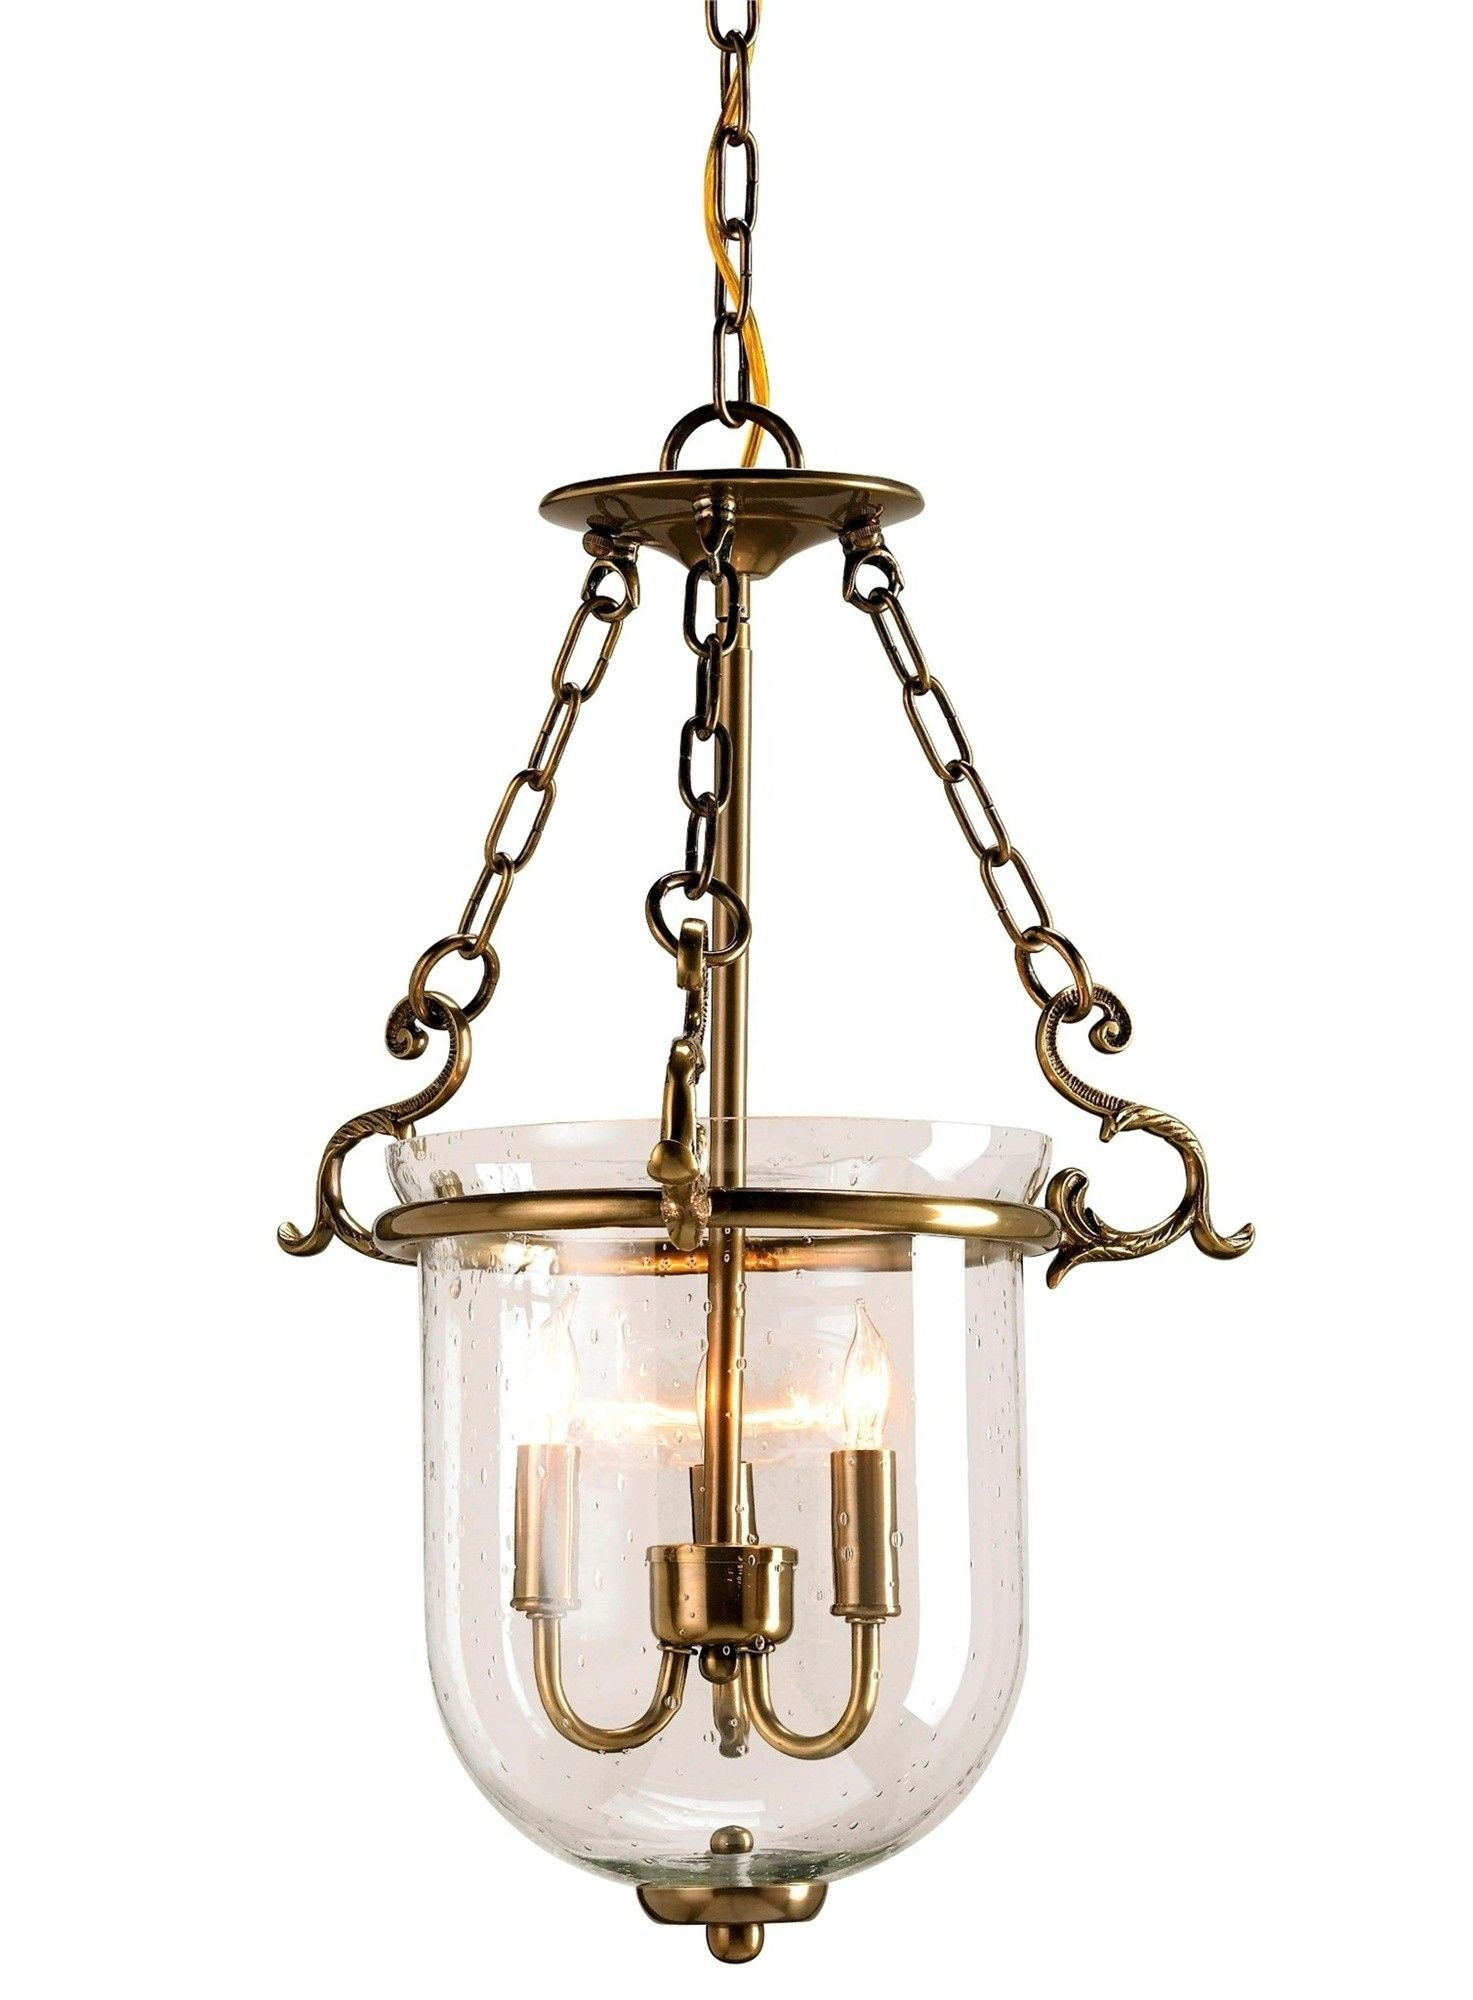 Petit athena lantern by currey and company smoking and vintage